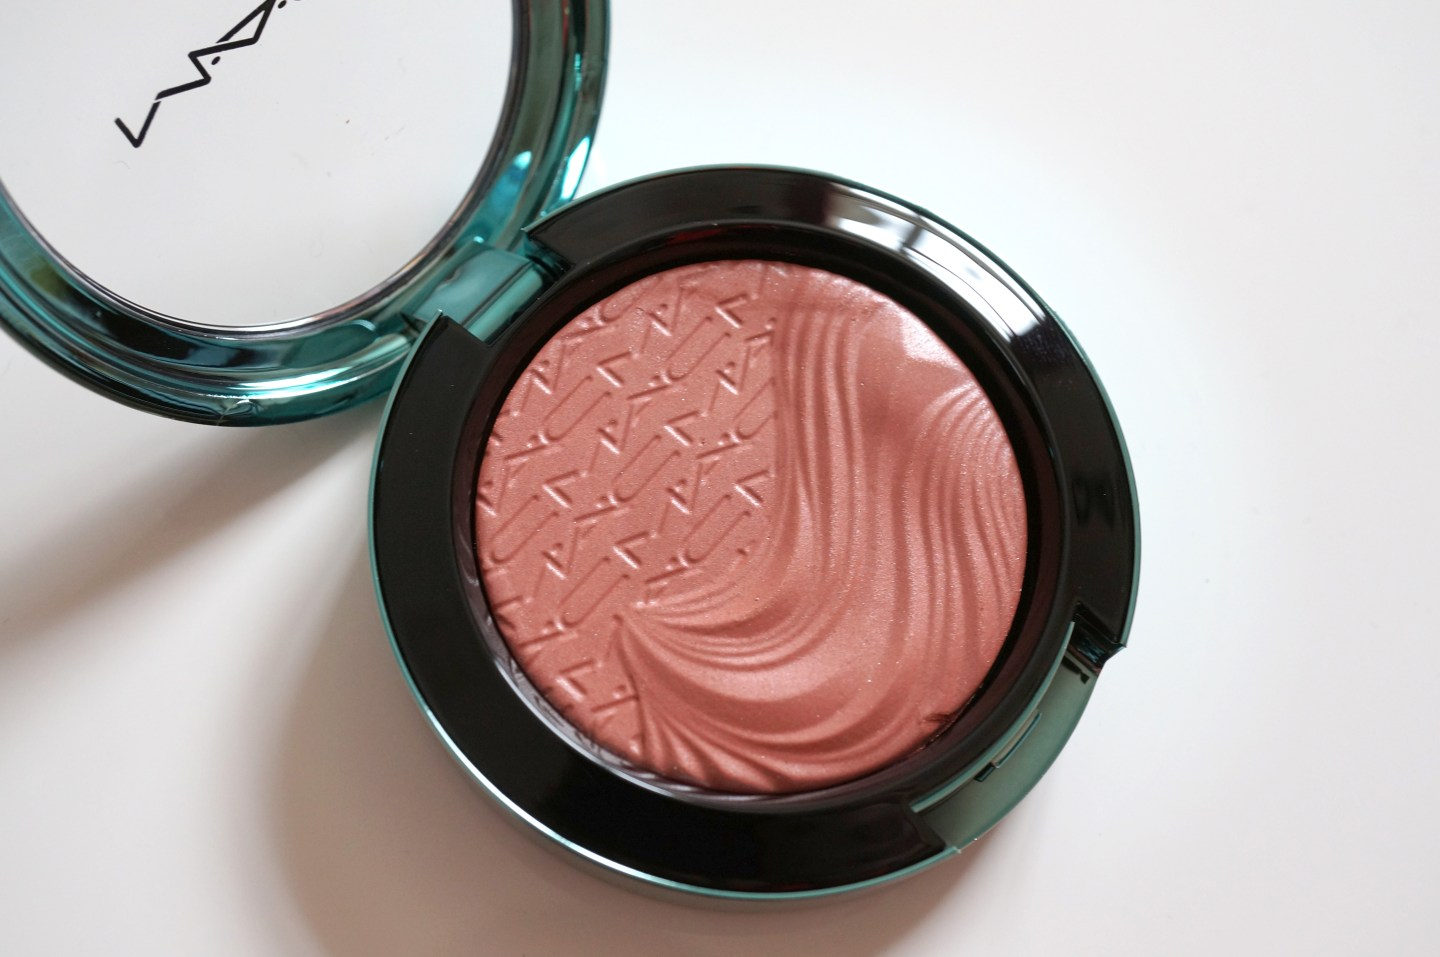 mac seduced at sea blush review